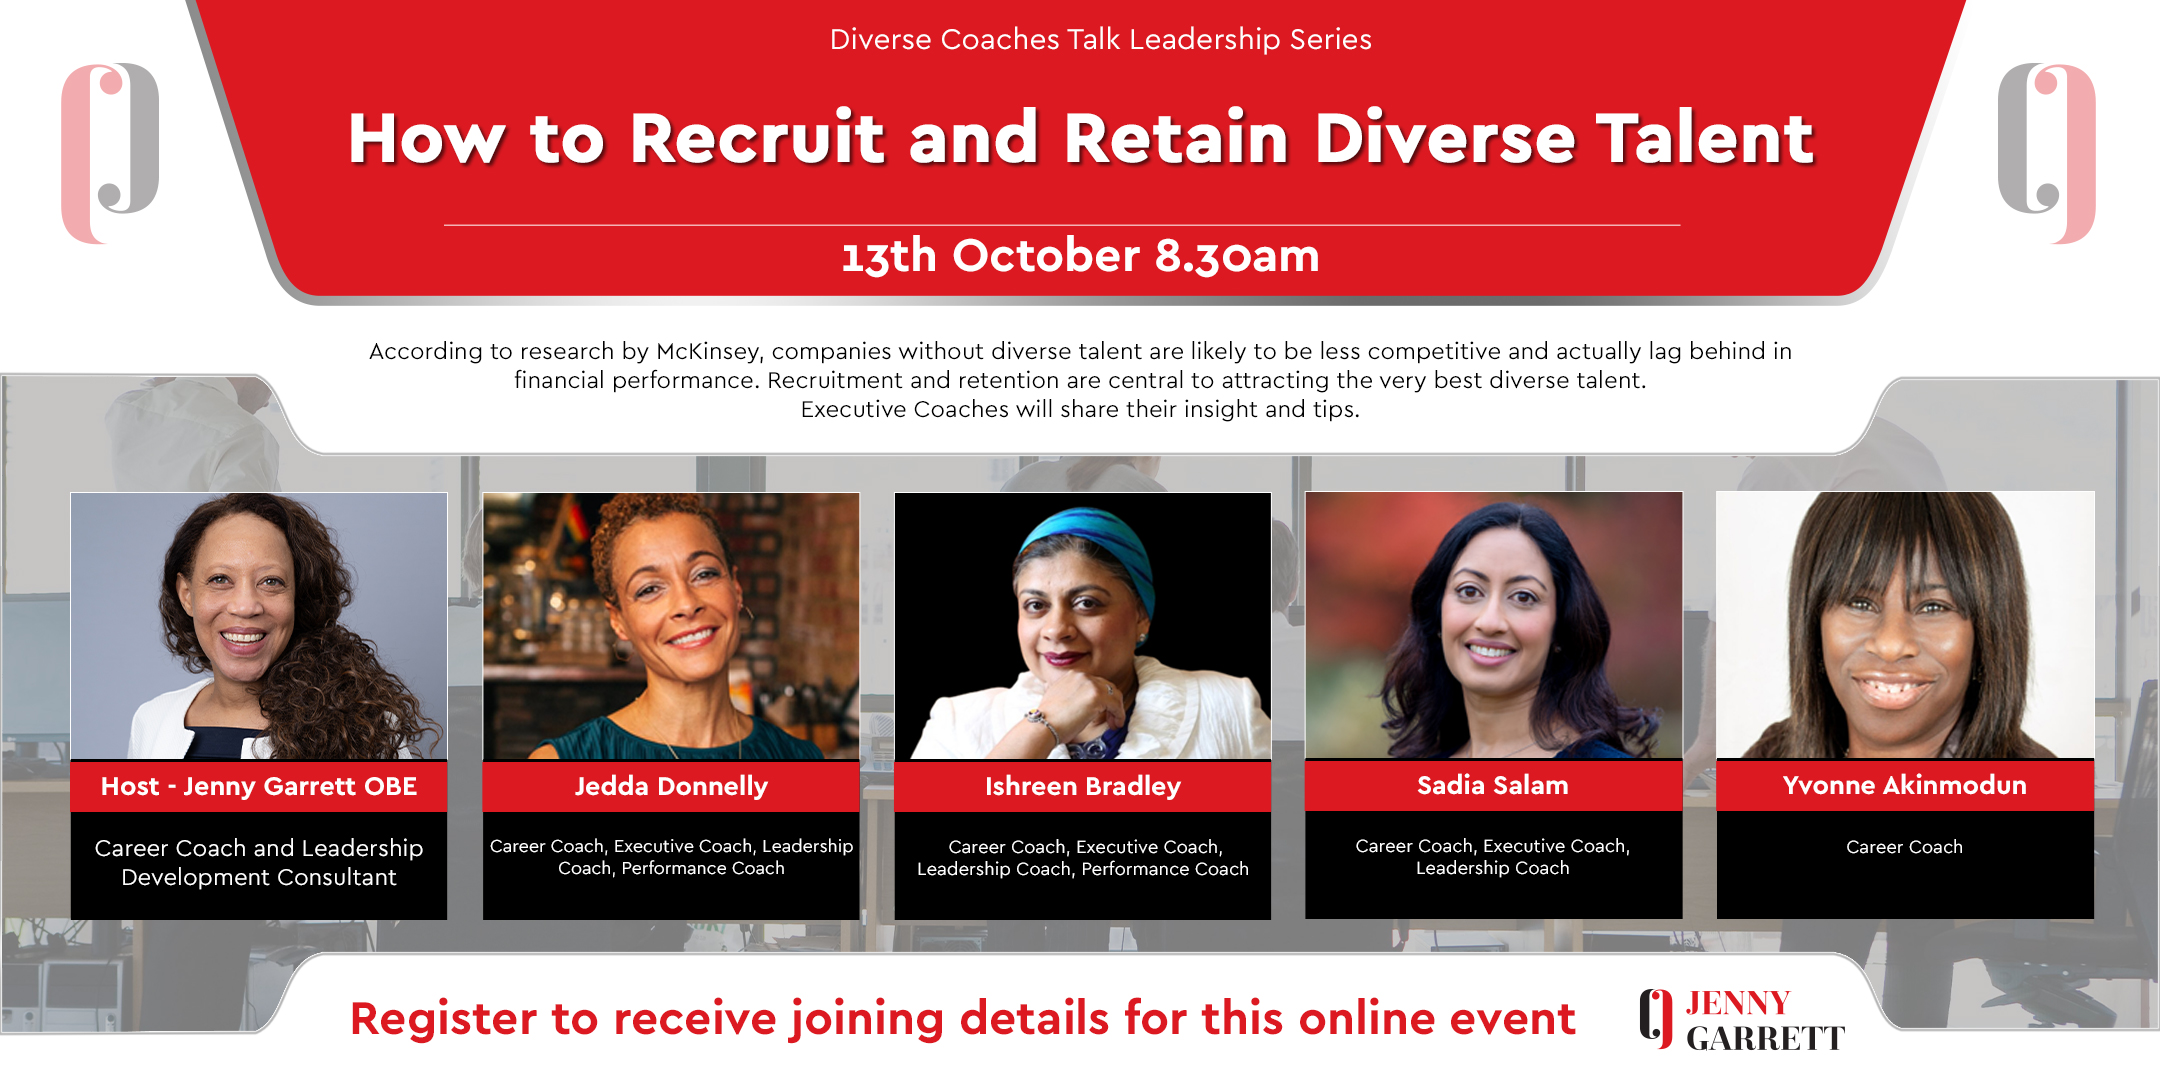 How to Recruit and Retain Diverse Talent